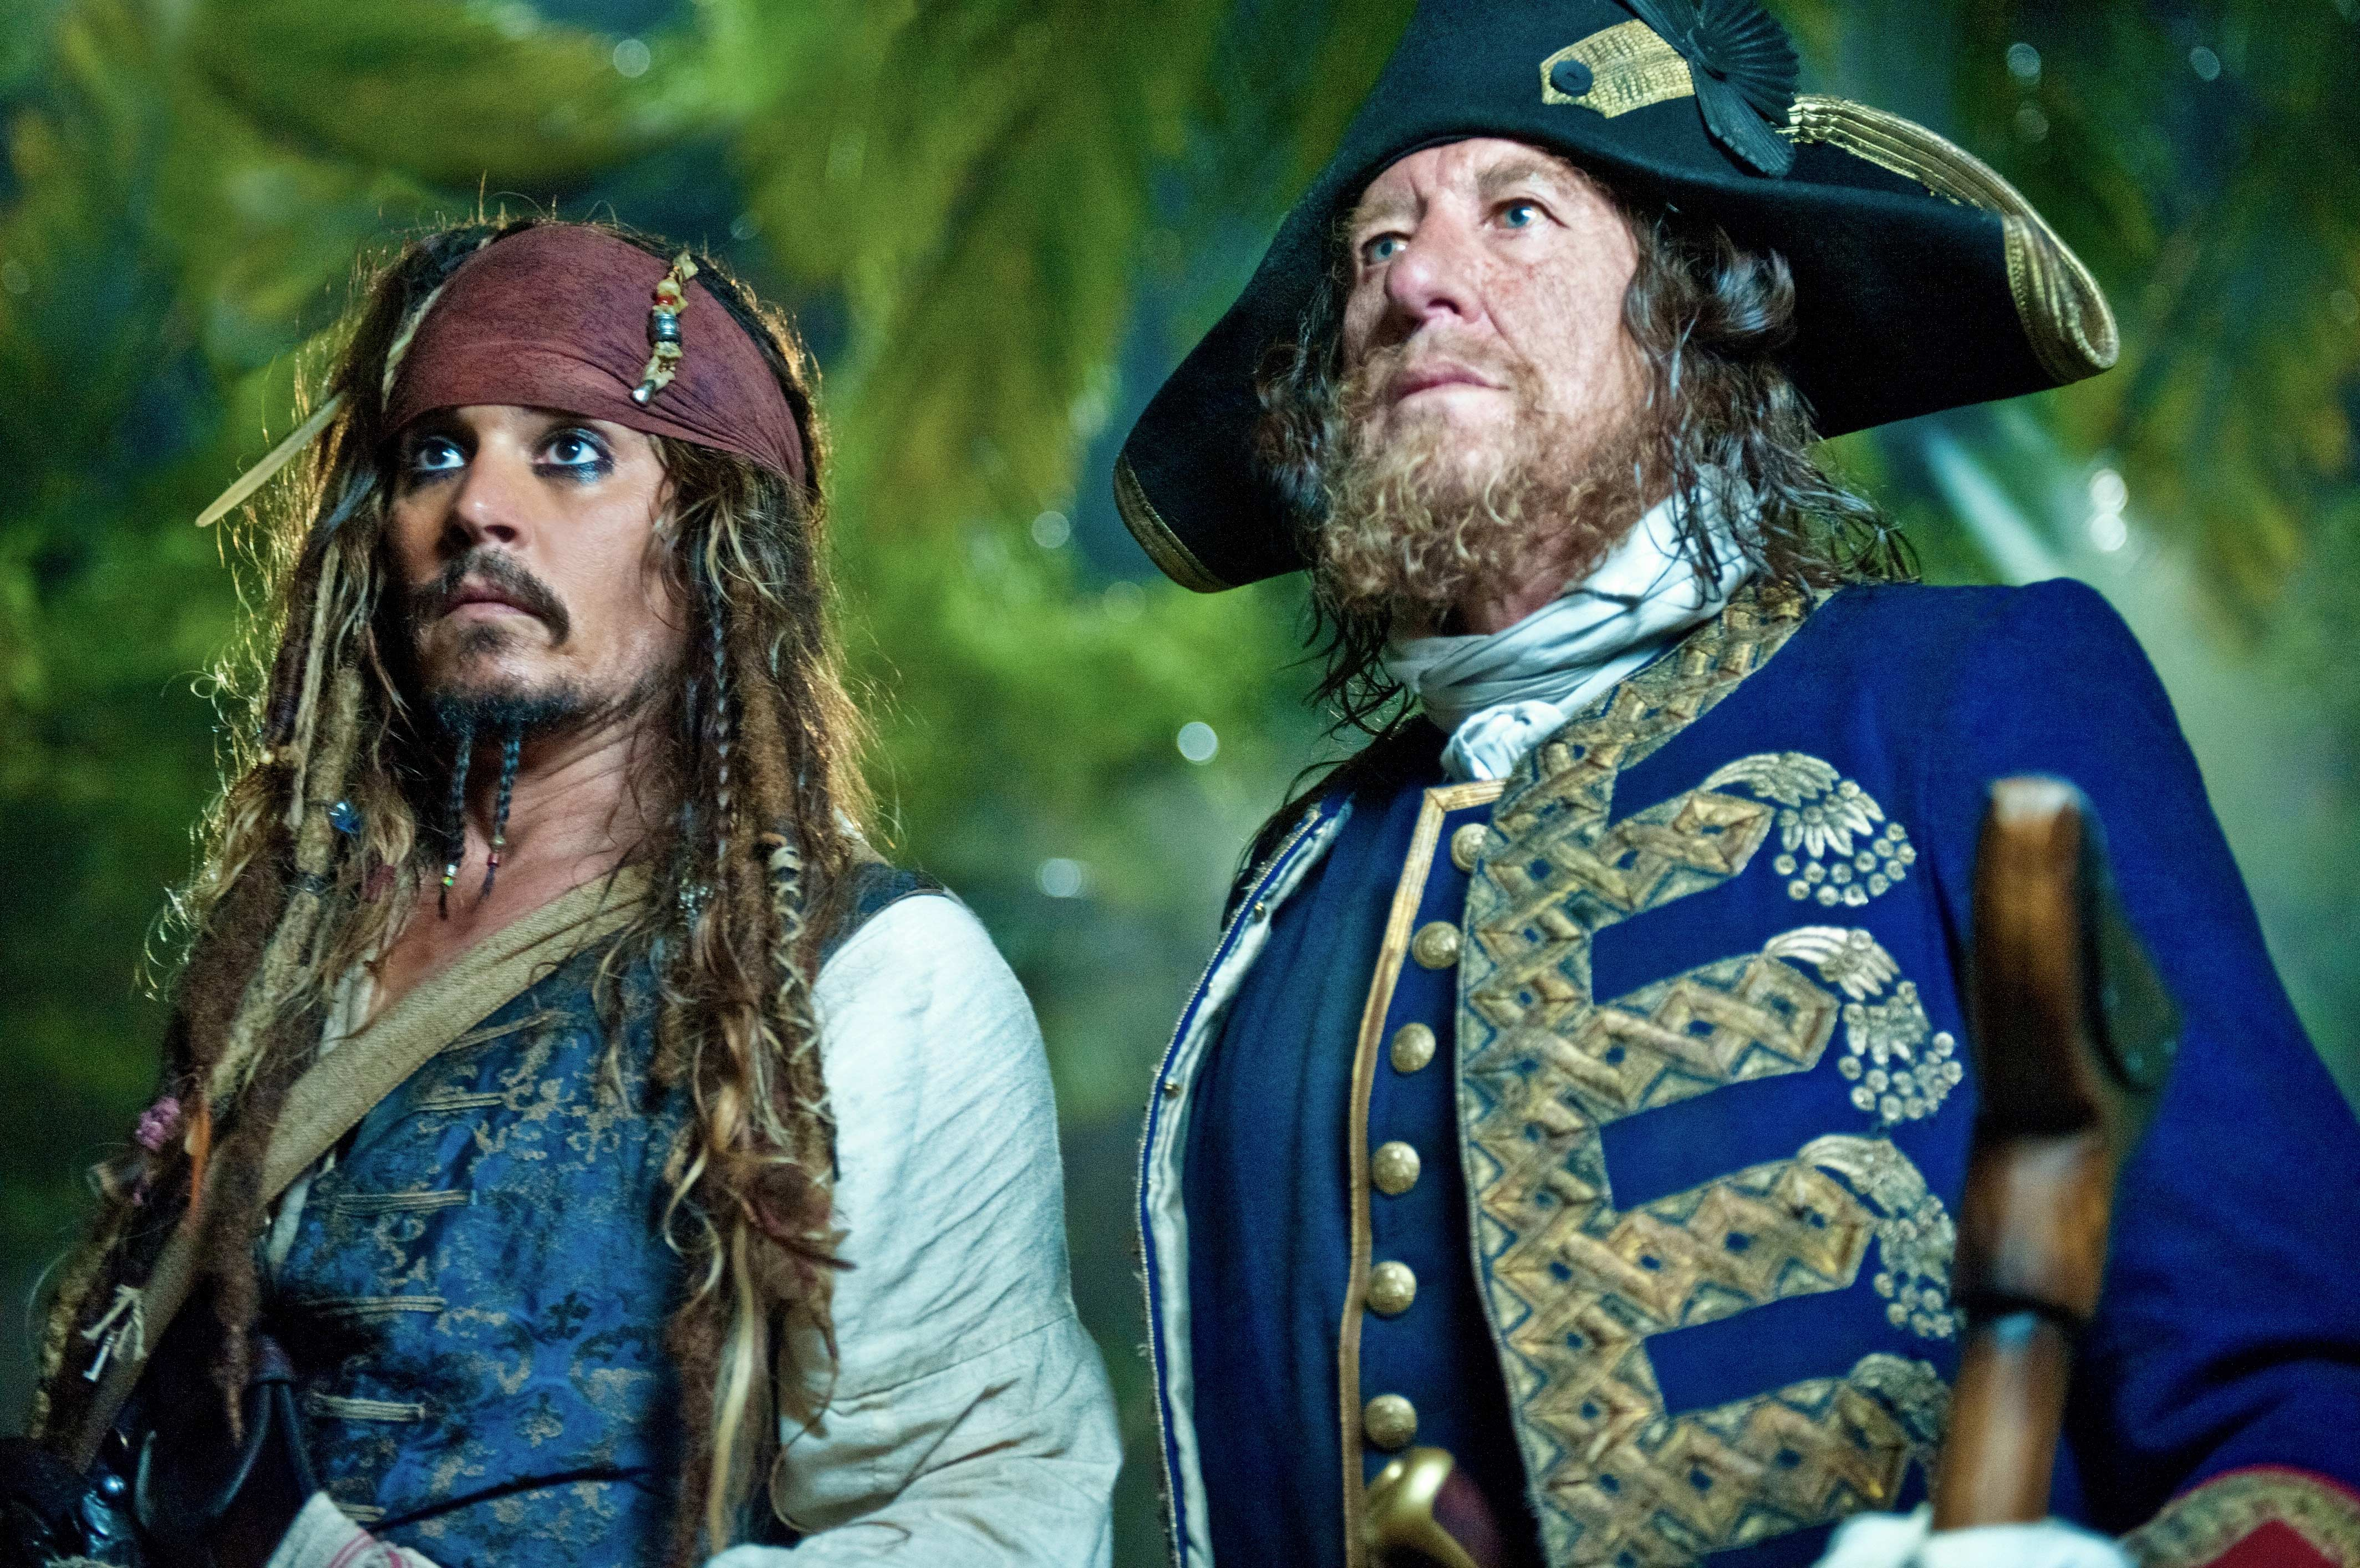 Jack sparrow and barbossa from pirates of the caribbean desktop jack sparrow and barbossa from pirates of the caribbean wallpaper click picture for high resolution hd wallpaper altavistaventures Image collections